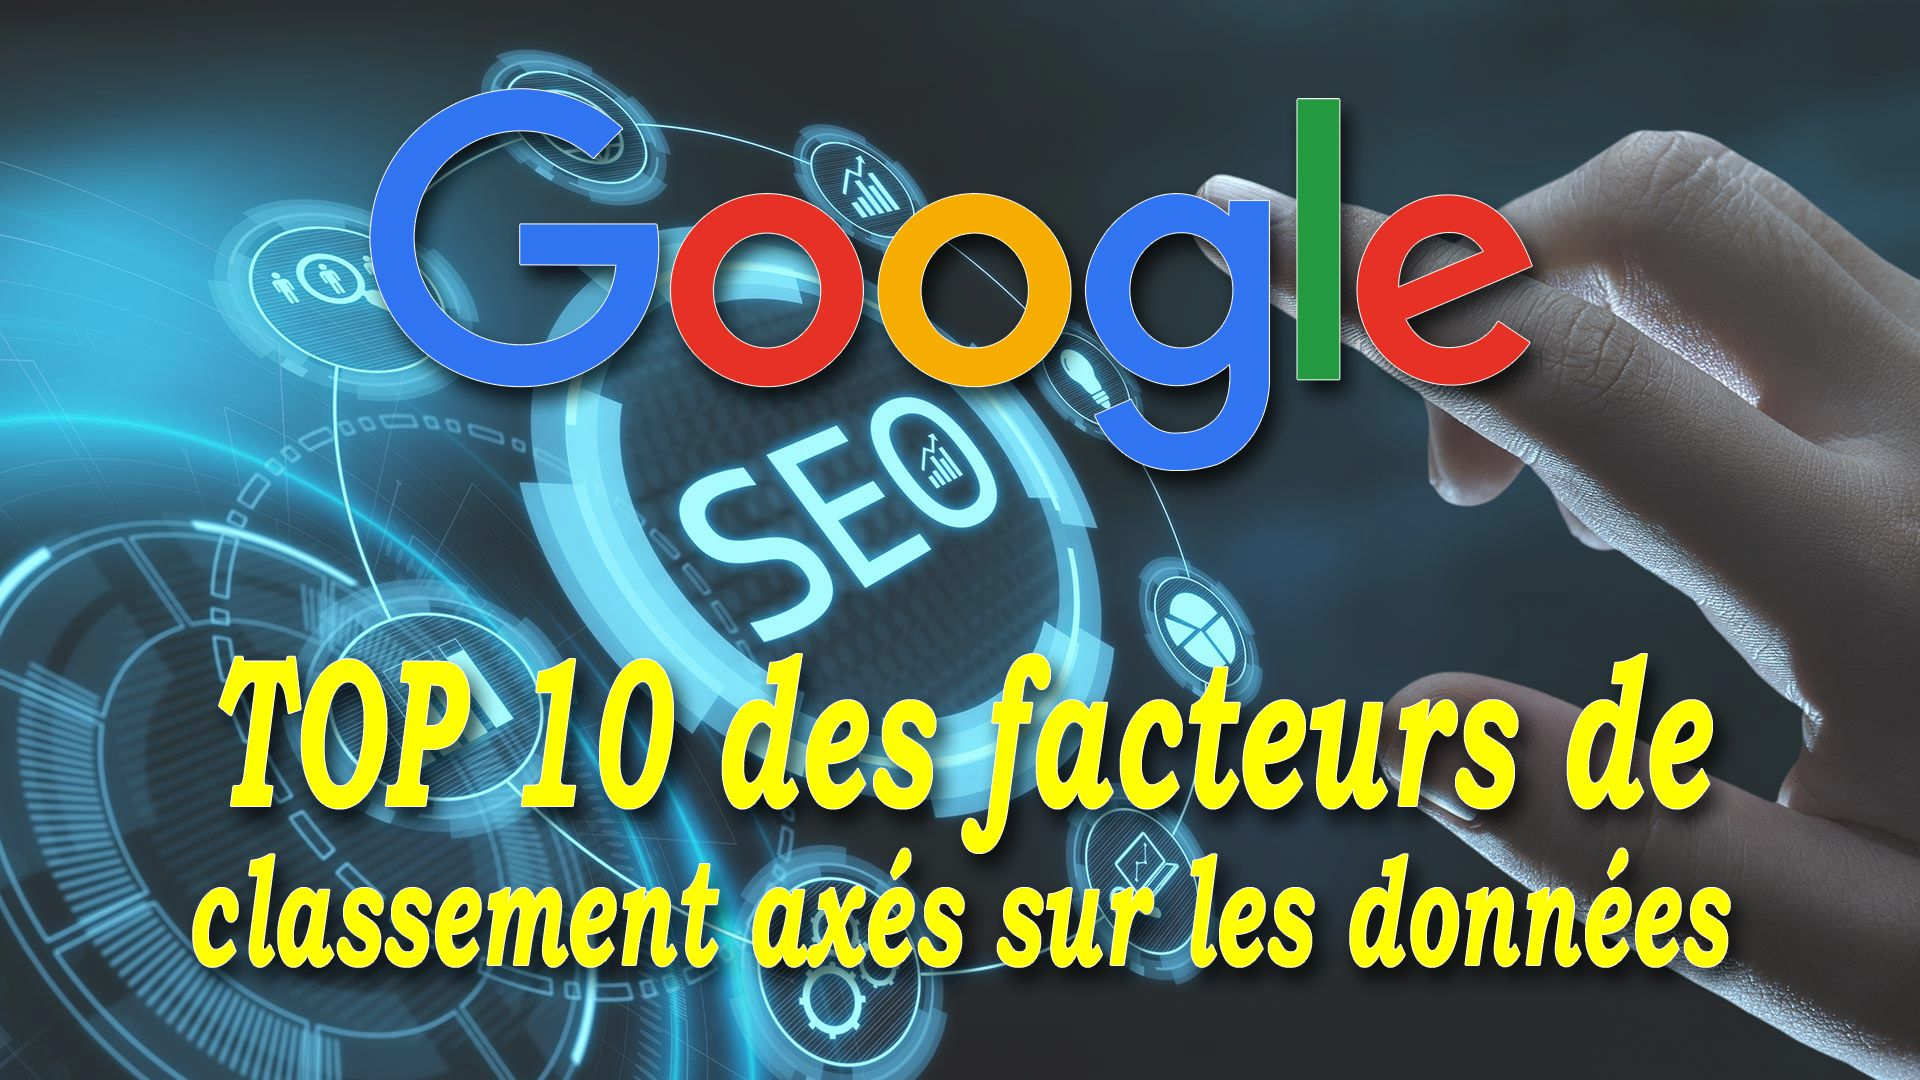 SEO : TOP 10 des facteurs de classement axés sur les données #GrowthHacking #WebMarketing #FormationGrowthHacking #CentreDeFormationFrance #TunnelAARRR #AARRR #SocialMedia #CommunityManagement #SEO #GoogleSEO #référencement